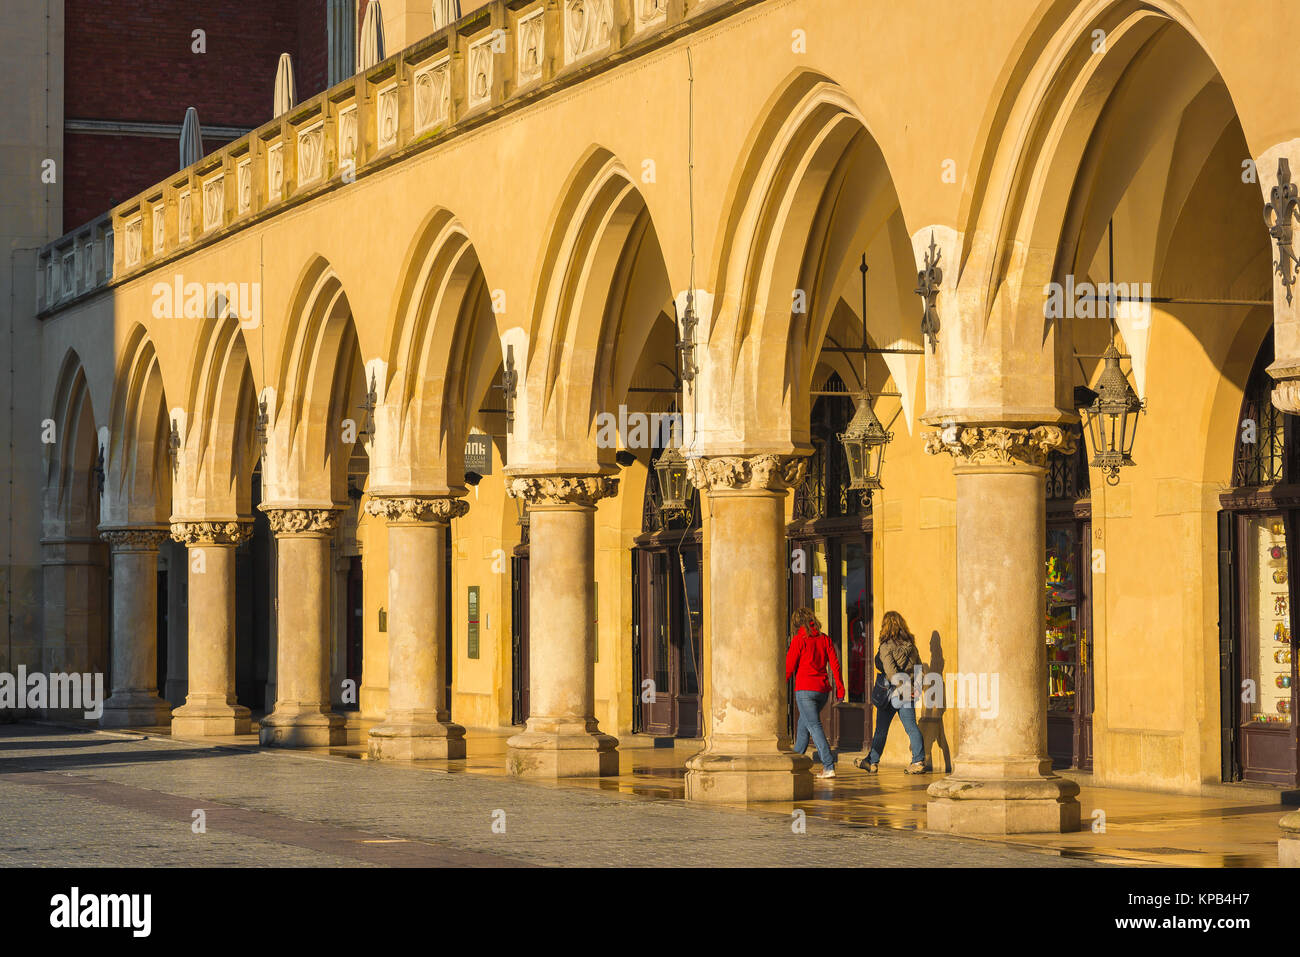 Colonnade arcade Europe, two young women walk through a colonnade of the Renaissance Cloth Hall (Sukiennice) in - Stock Image